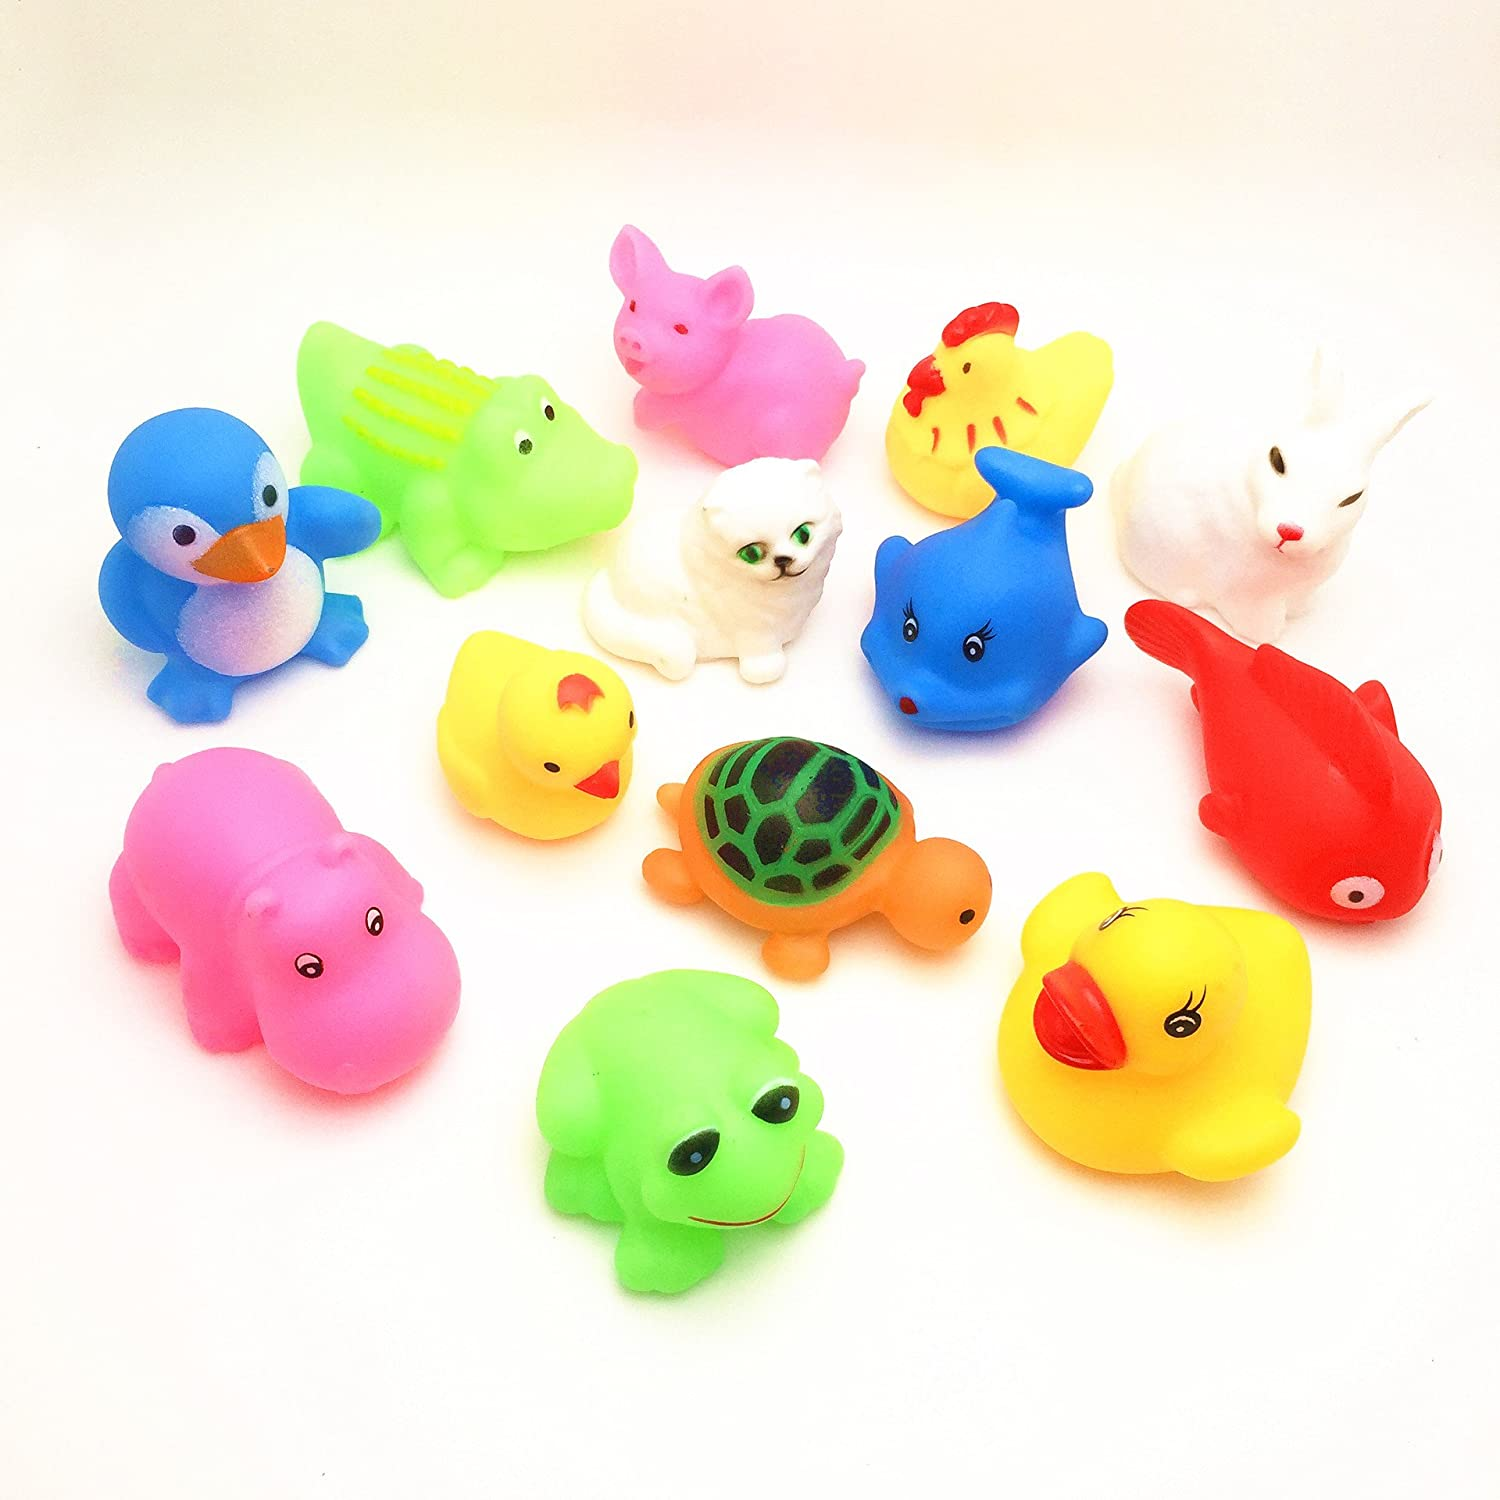 Toyofmine 13 pcs/Lot Mixed Different Animal Bath Toys(Random colors and patterns) .